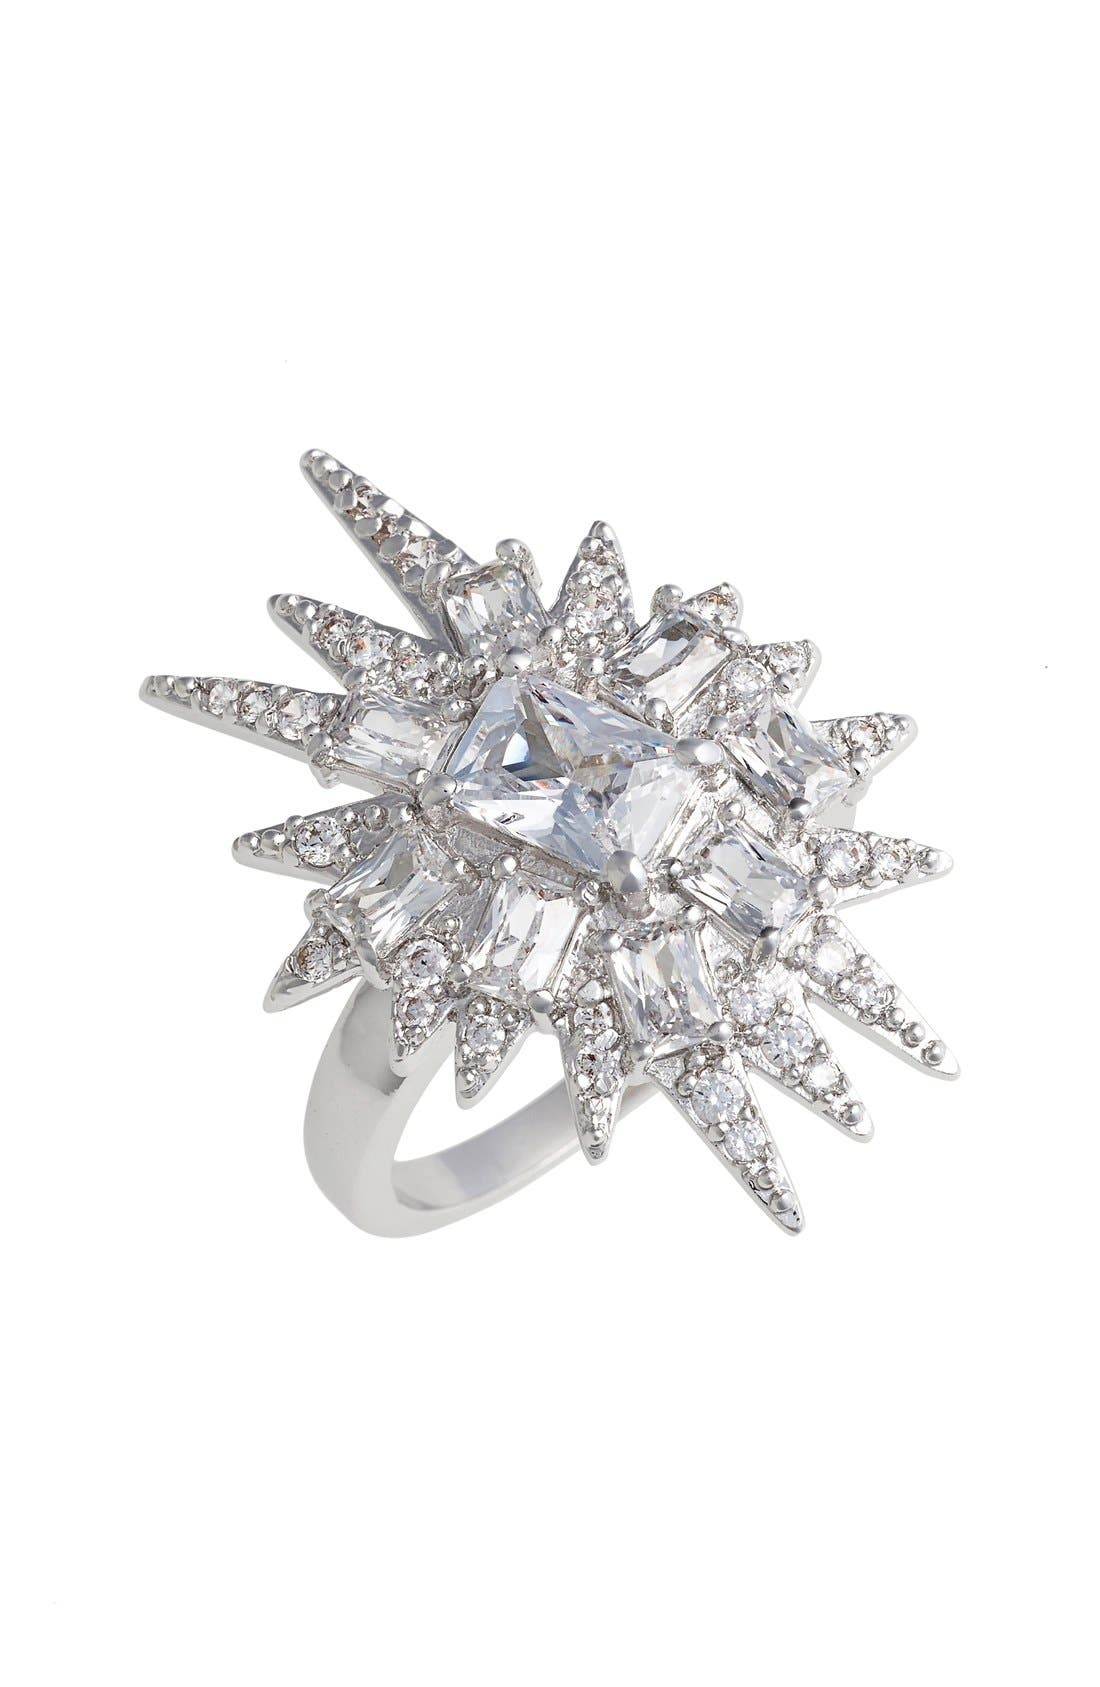 'Explosion' Cubic Zirconia Cocktail Ring,                             Main thumbnail 1, color,                             040